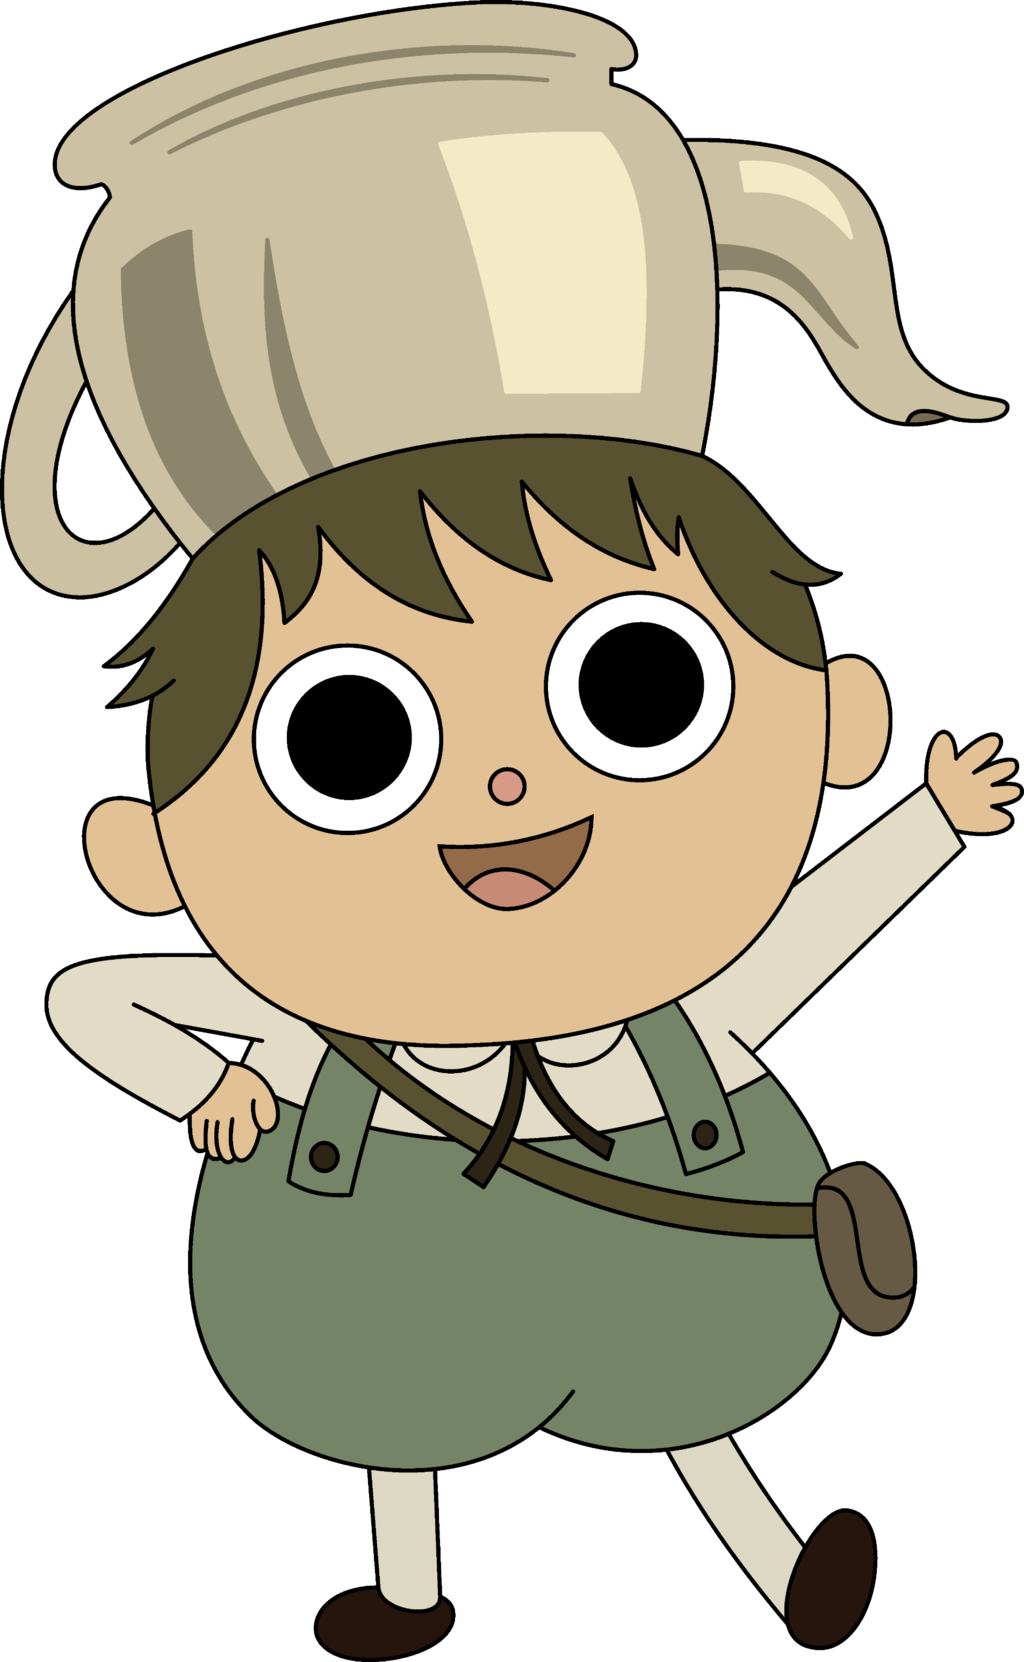 Image Over The Garden Wall Actual Character Gregory By Ncontreras207 Steven